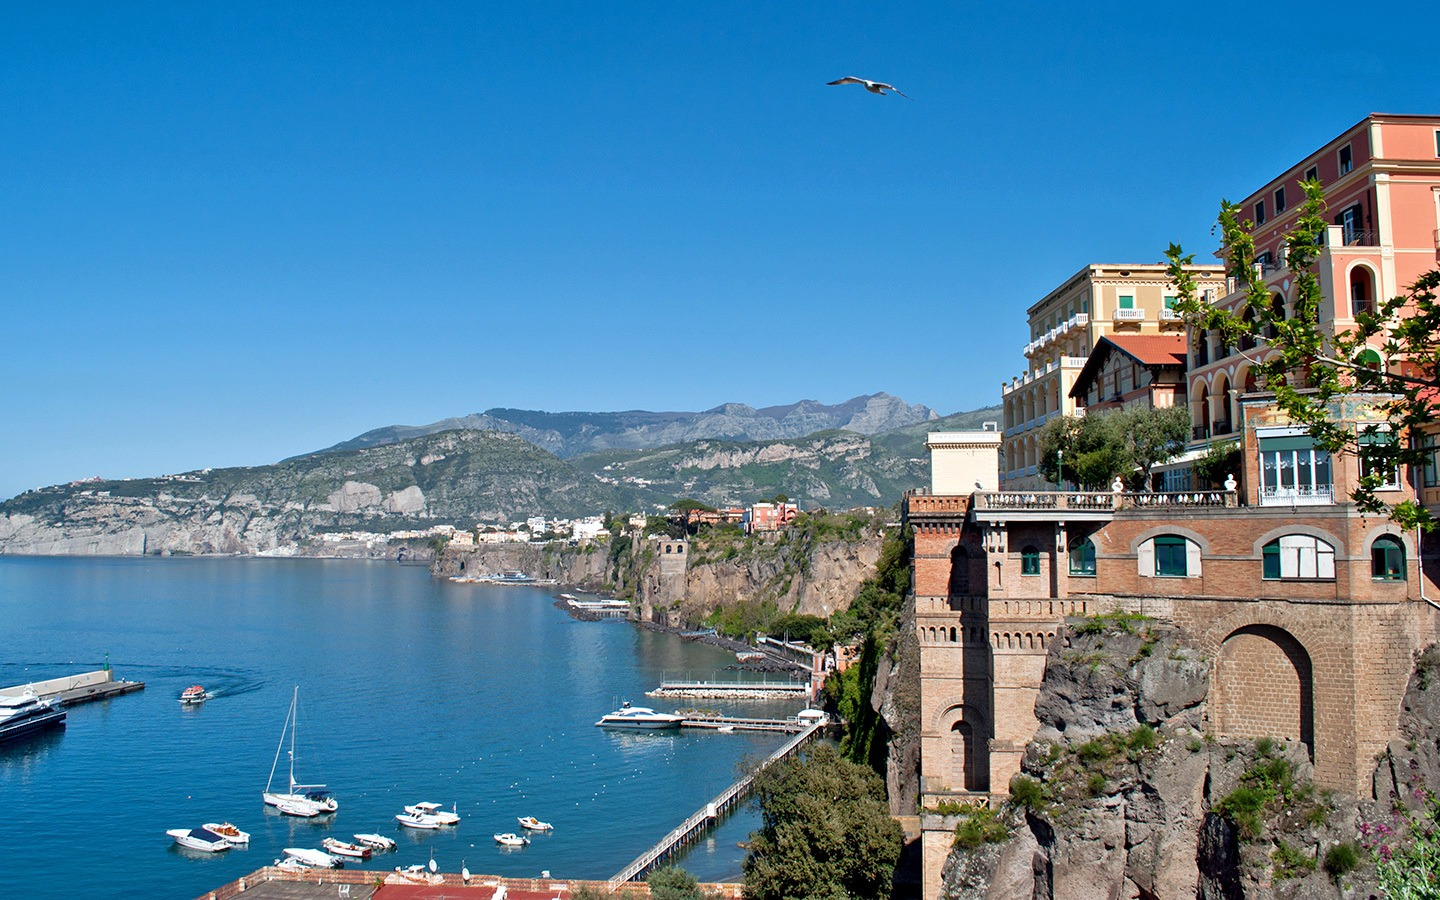 Sirens and sunsets: What to do and see in Sorrento, Italy